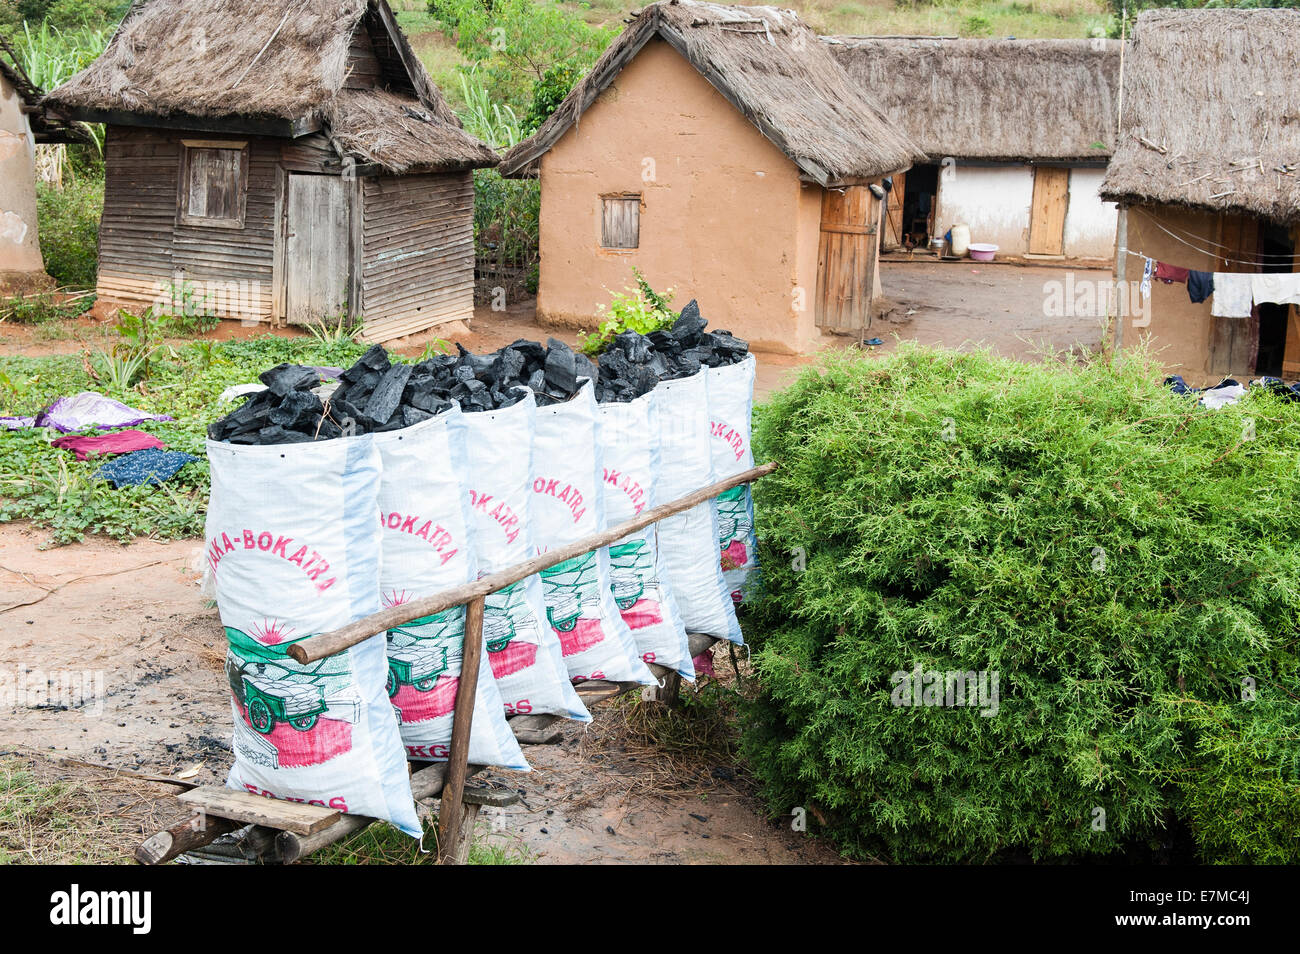 Sacks of charcoal for sale in Madagascar - Stock Image